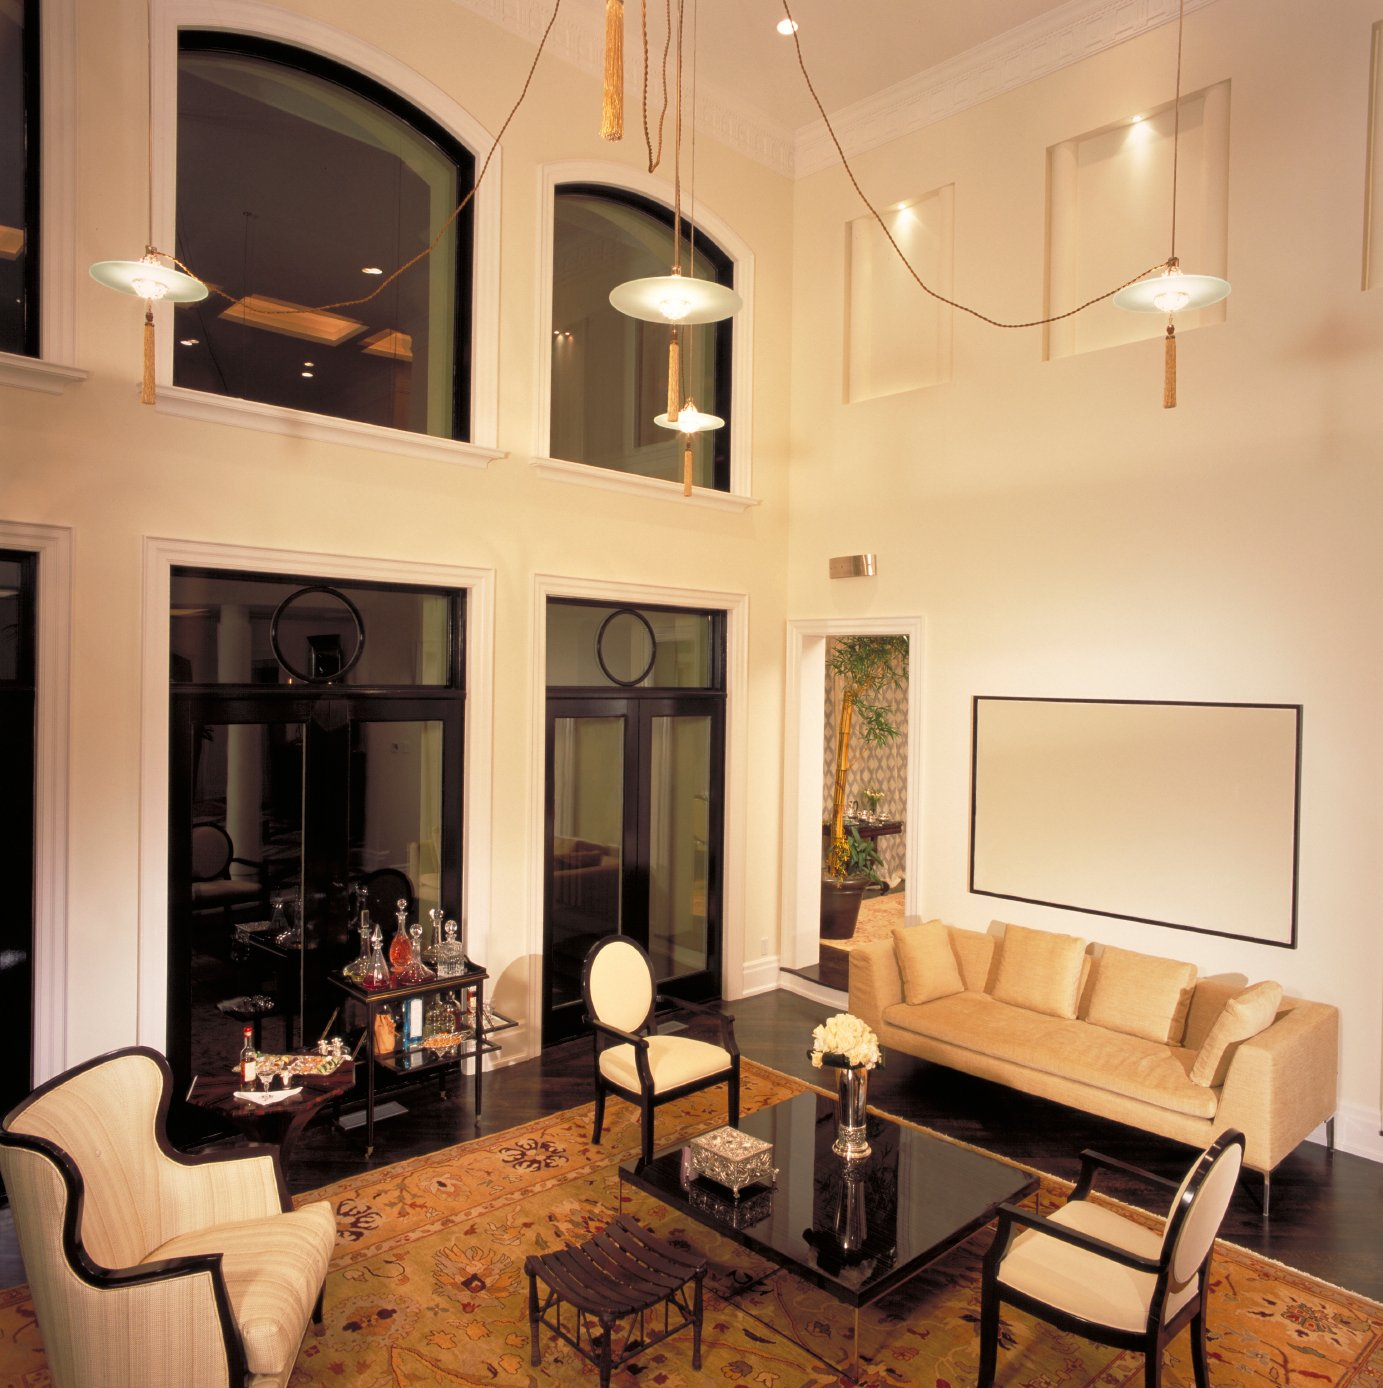 Striking details abound in this high contrast room, featuring dark hardwood flooring set against white walls and two stories of windows. Carved wood chairs and contemporary sofa sit around glossy black coffee table, unique four-part chandelier hangs above, and an array of glass patio doors stand at left.